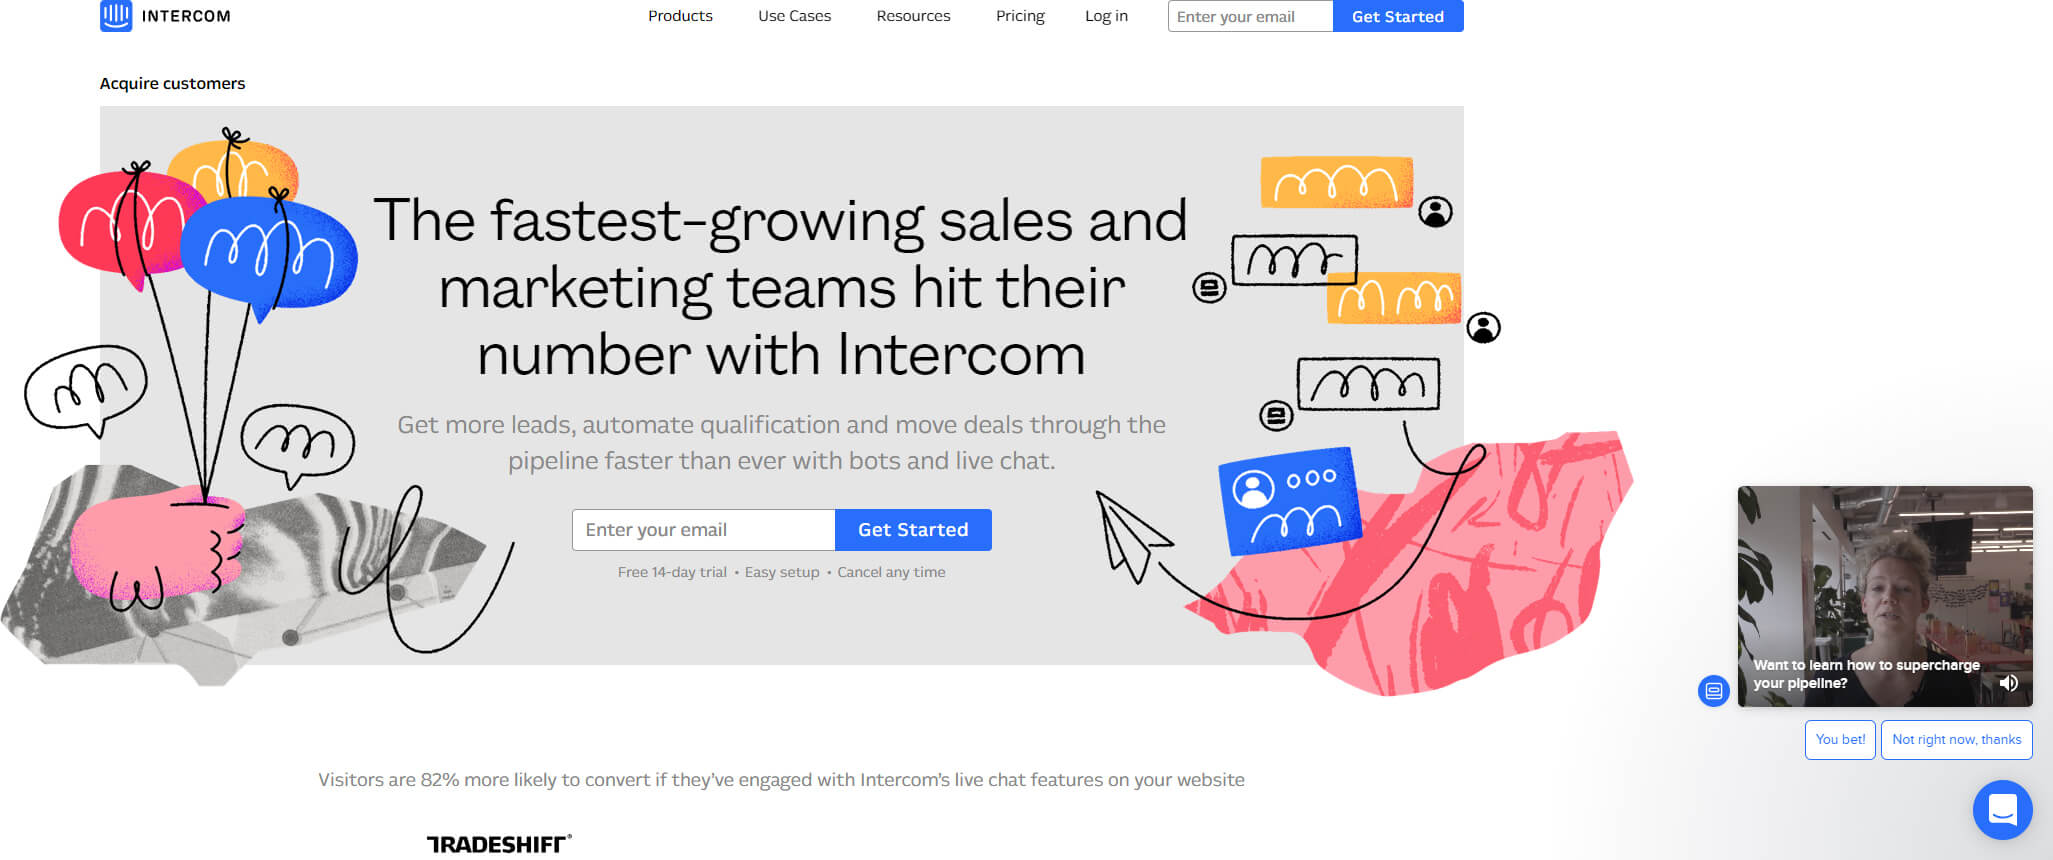 intercom-chat-b2bmarketing-creative